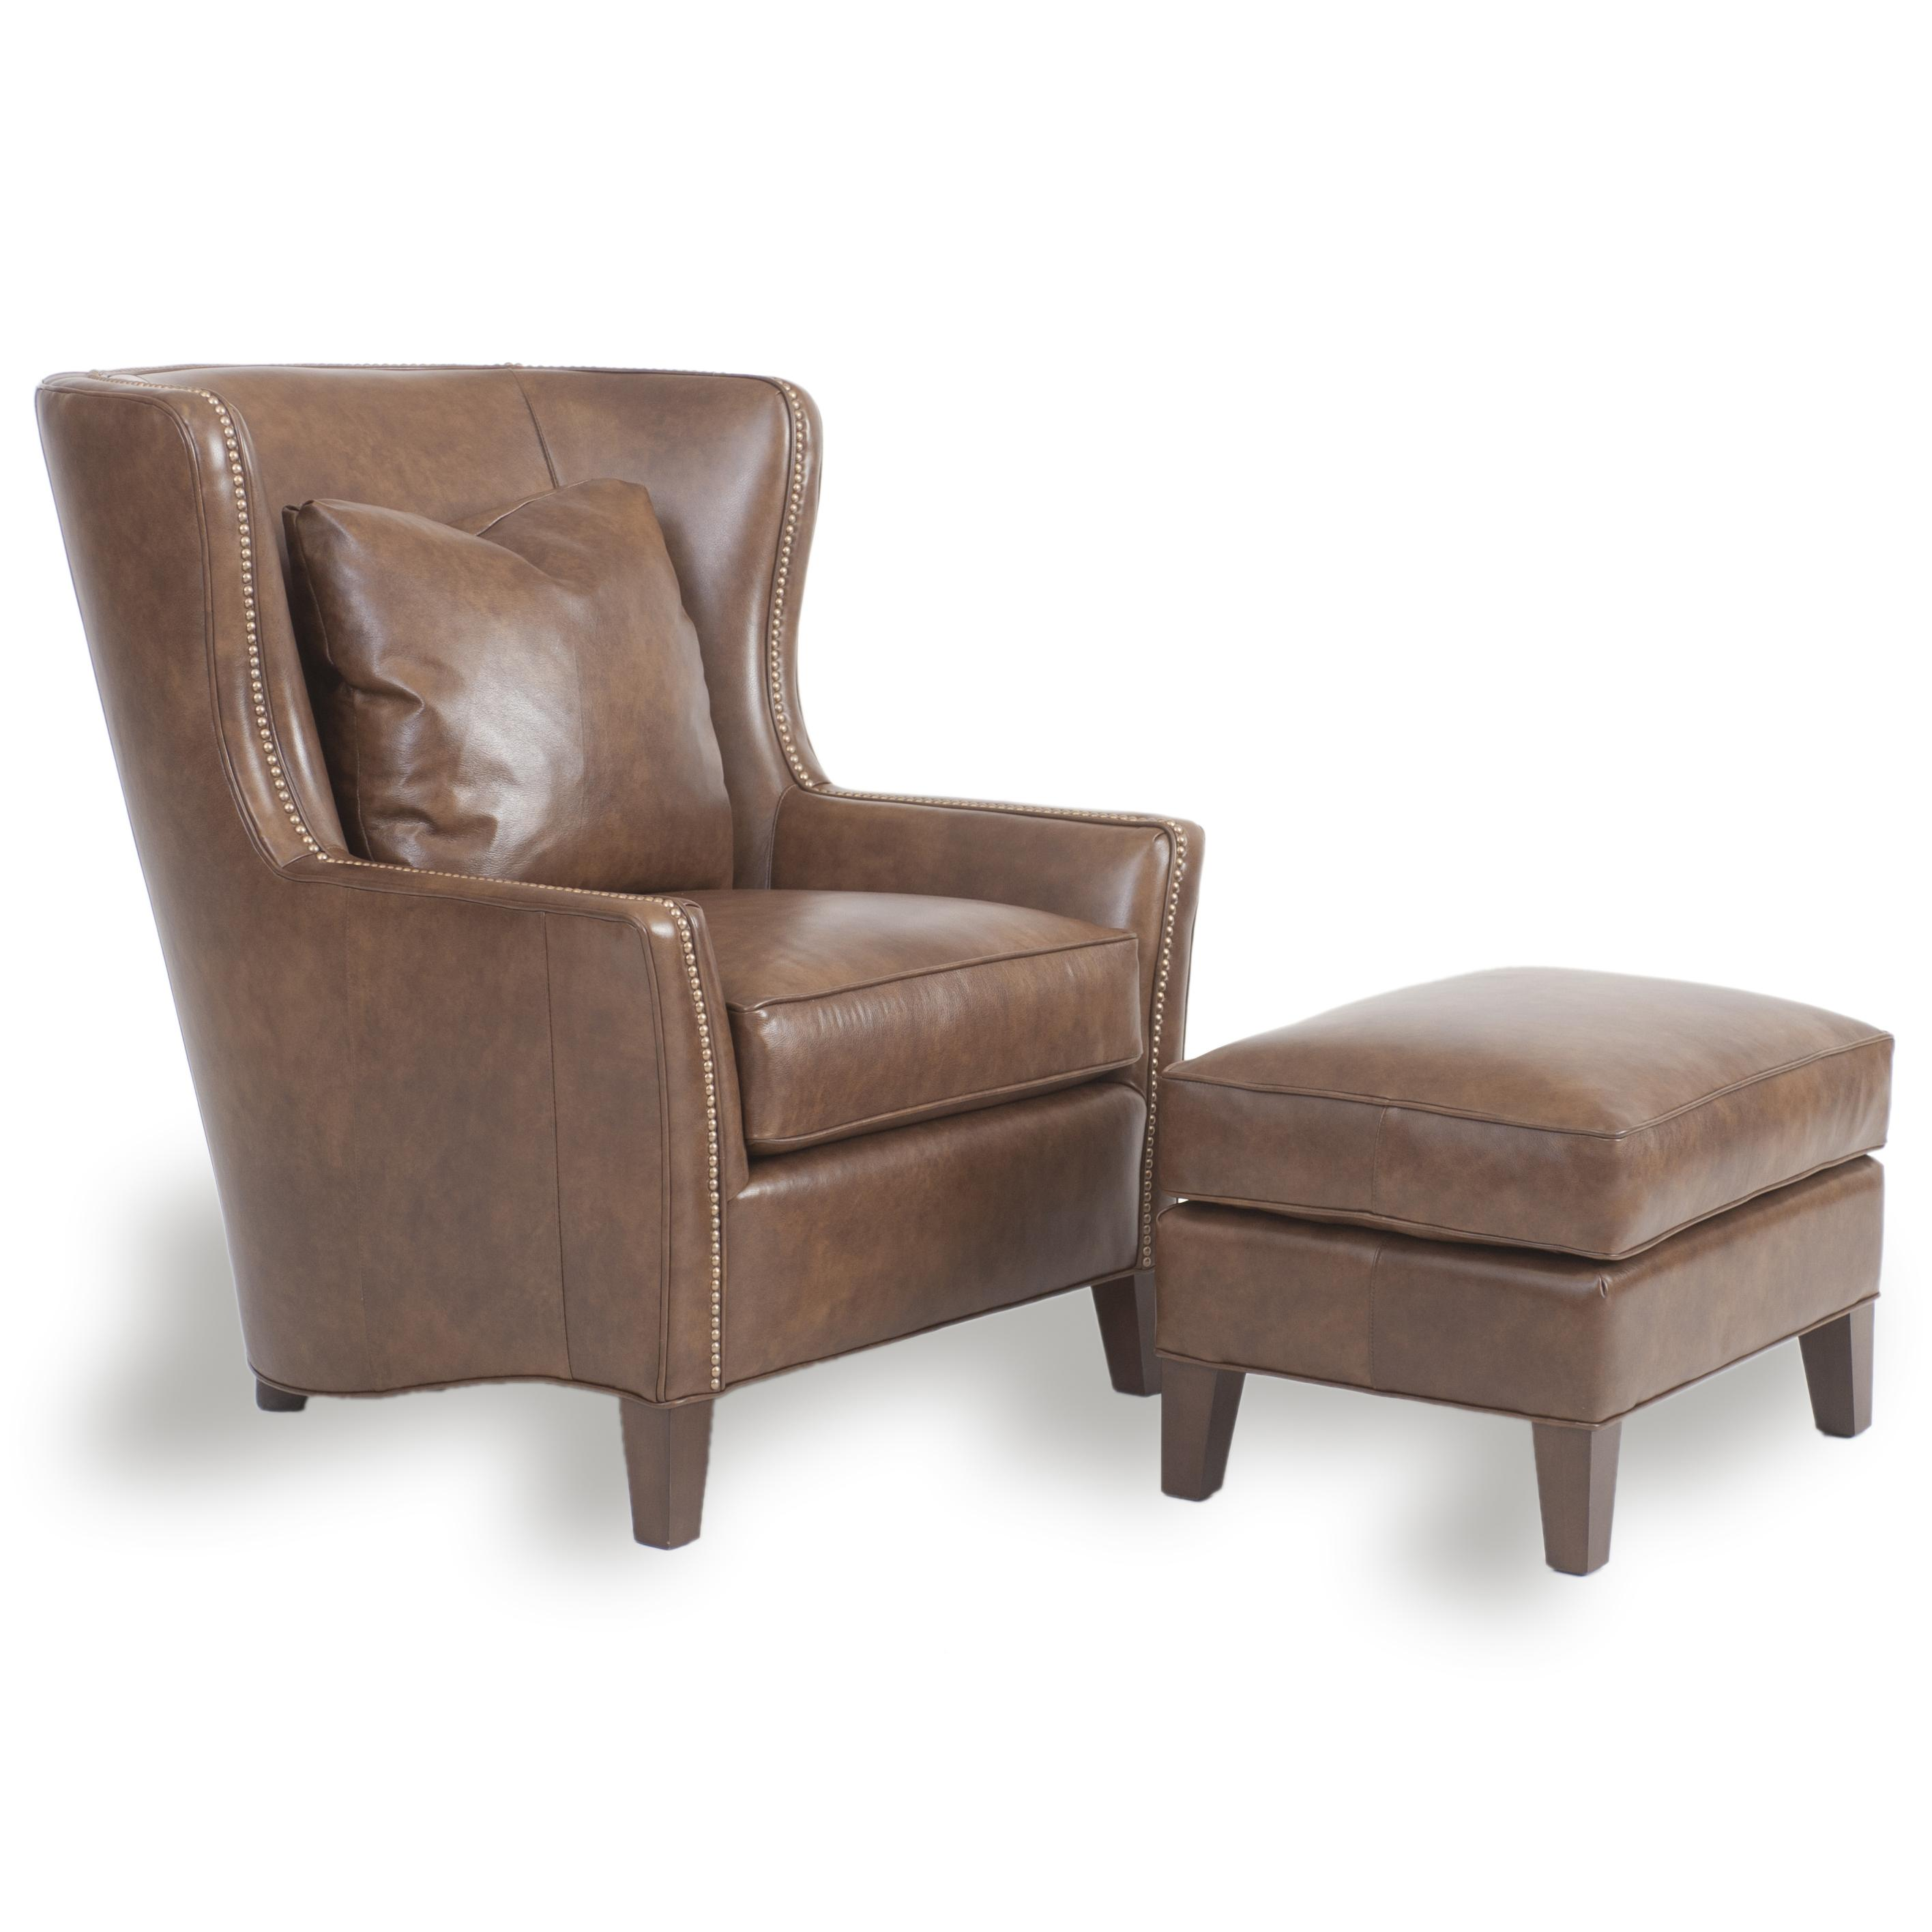 Smith Brothers Accent Chairs And Ottomans Sb Ottoman With